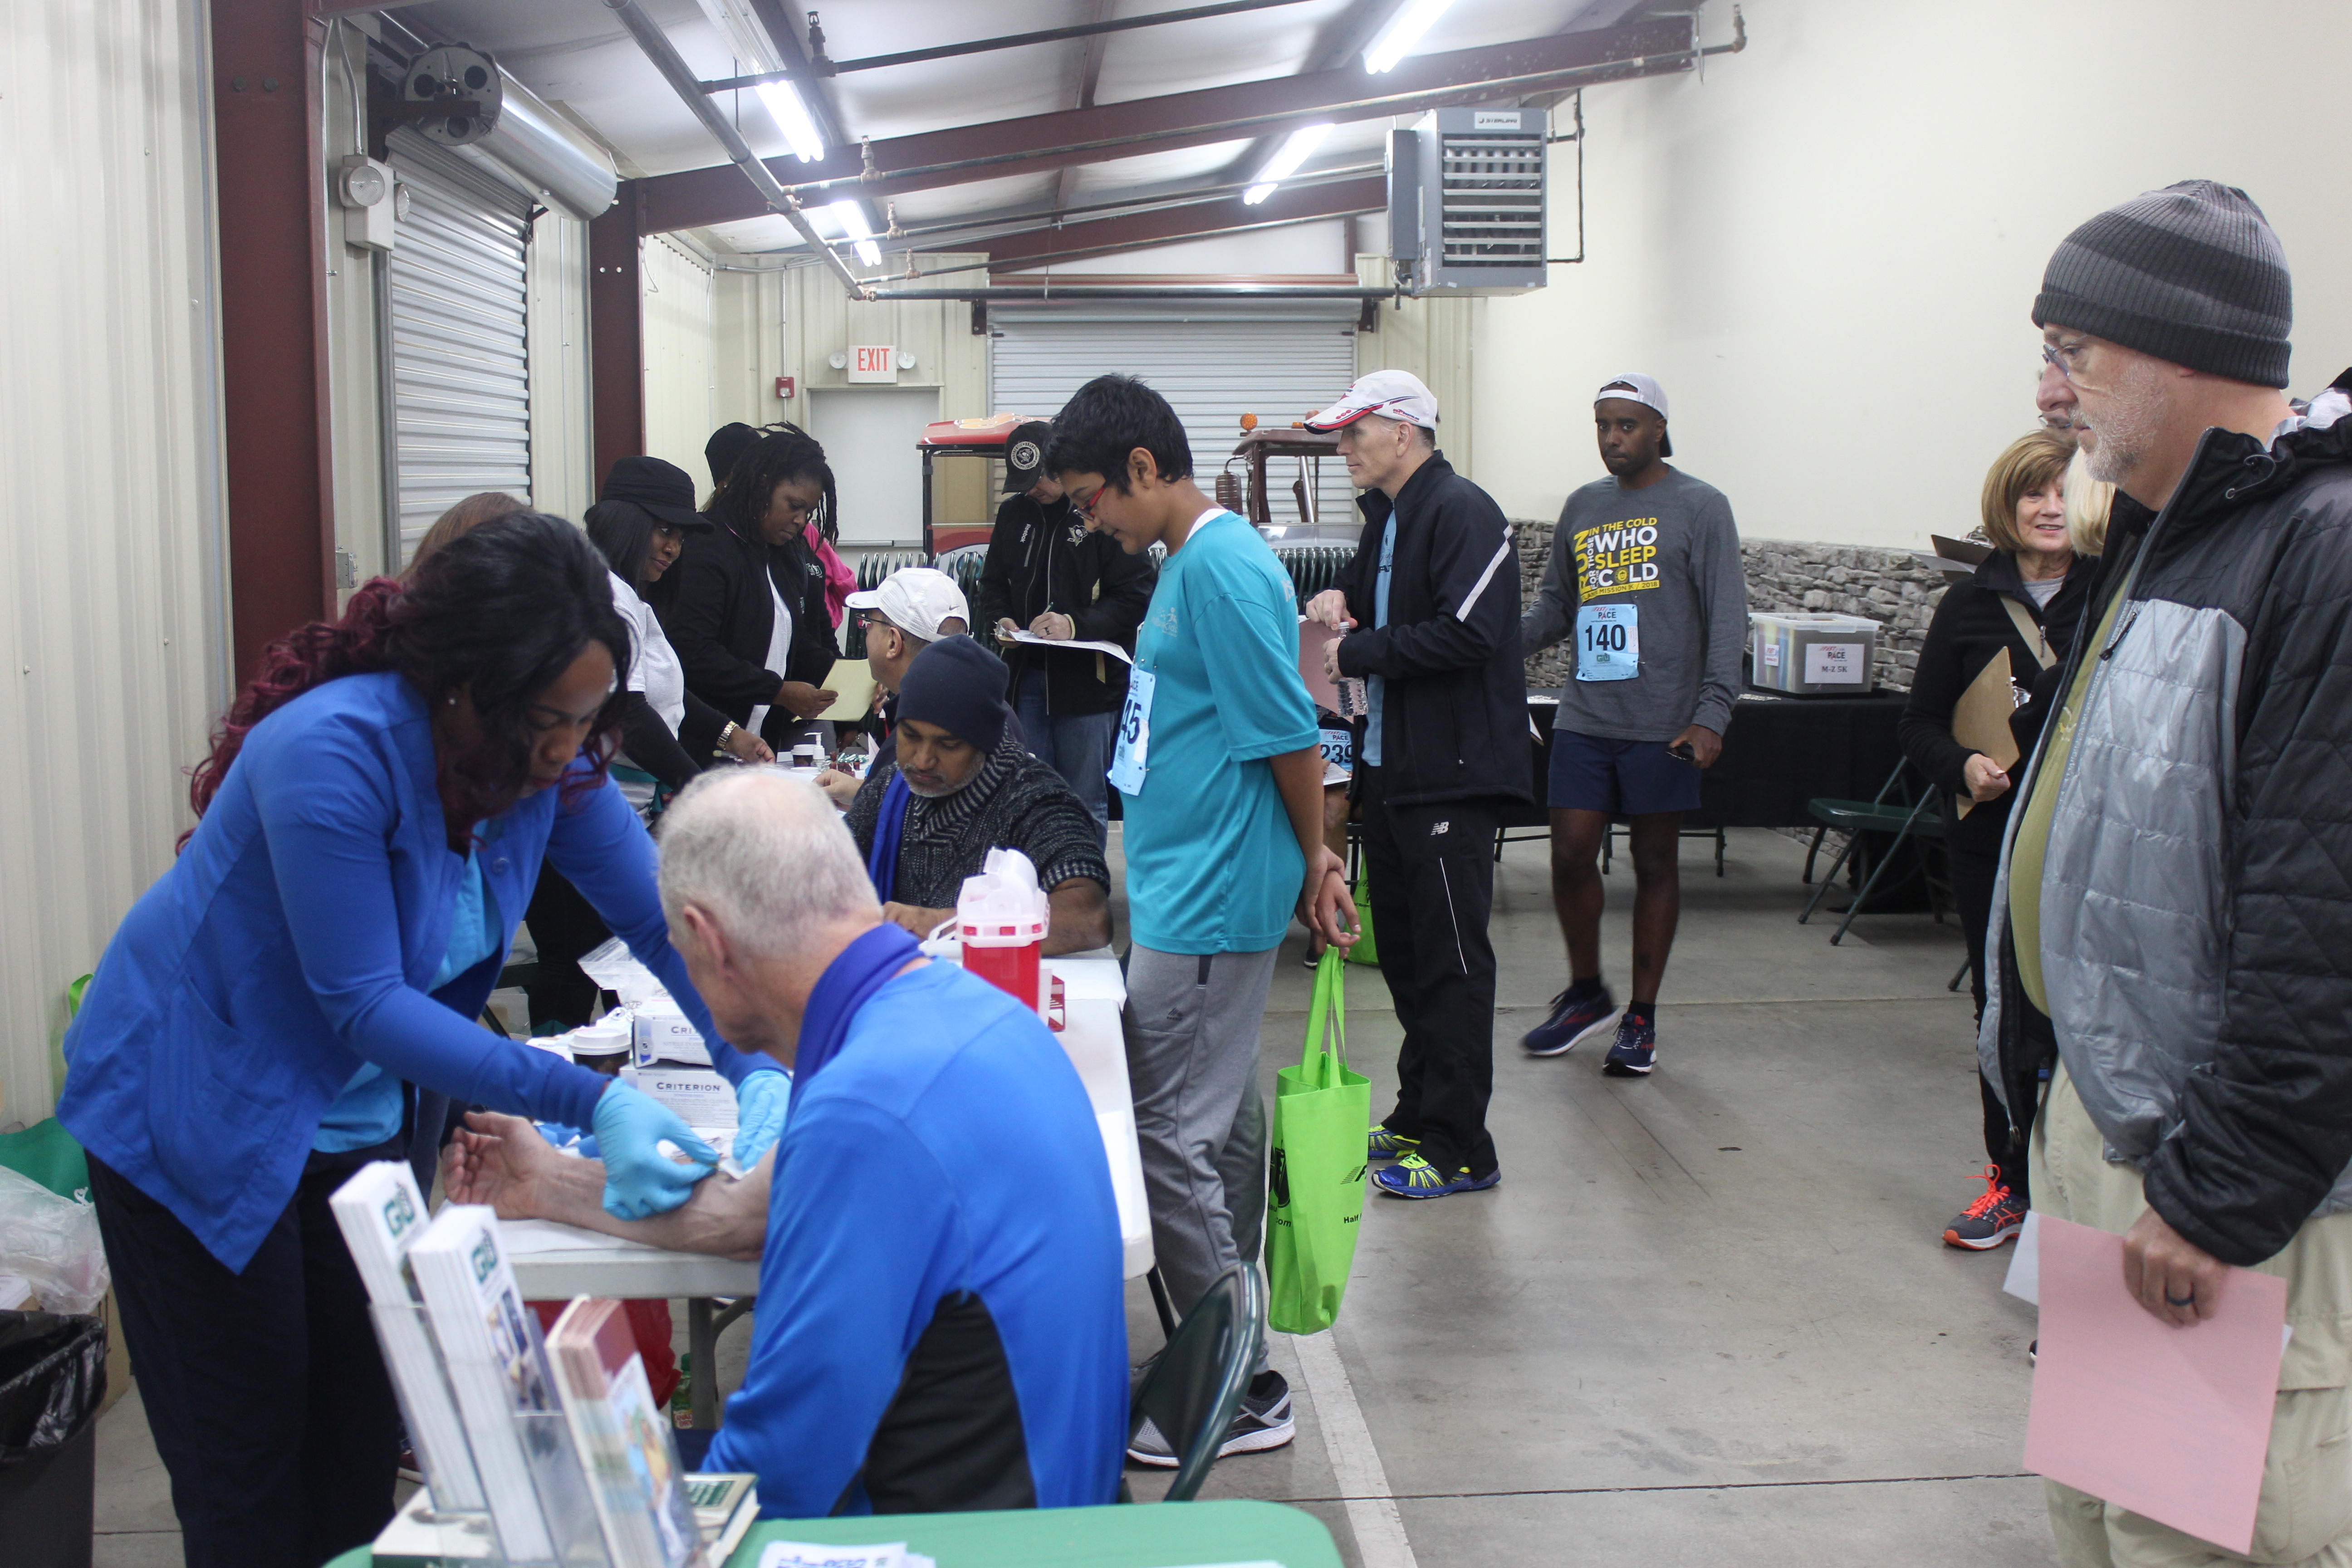 Photo of the F.A.S.T P.A.C.E event, GU nurses getting the prostate cancer readings for participants.